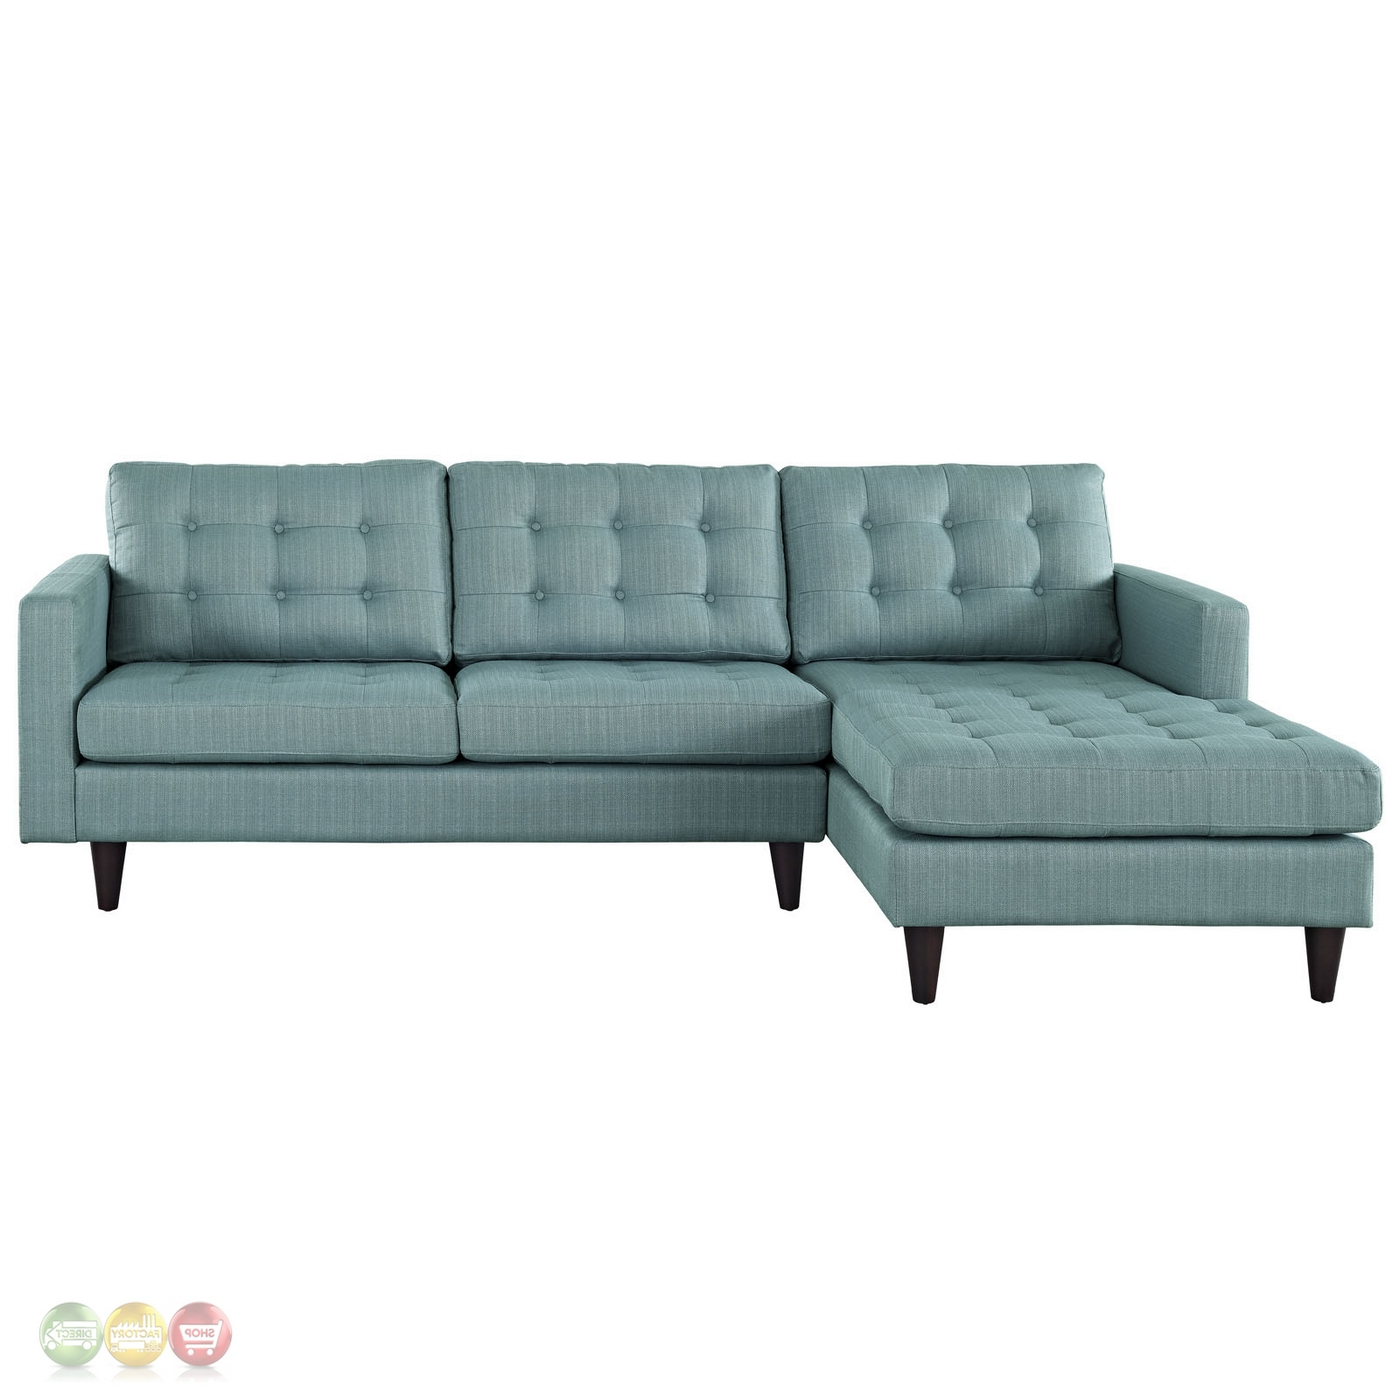 Florence Mid Century Modern Left Sectional Sofas Throughout Latest Mid Century Modern Empress Left Facing Button Tufted (View 6 of 25)